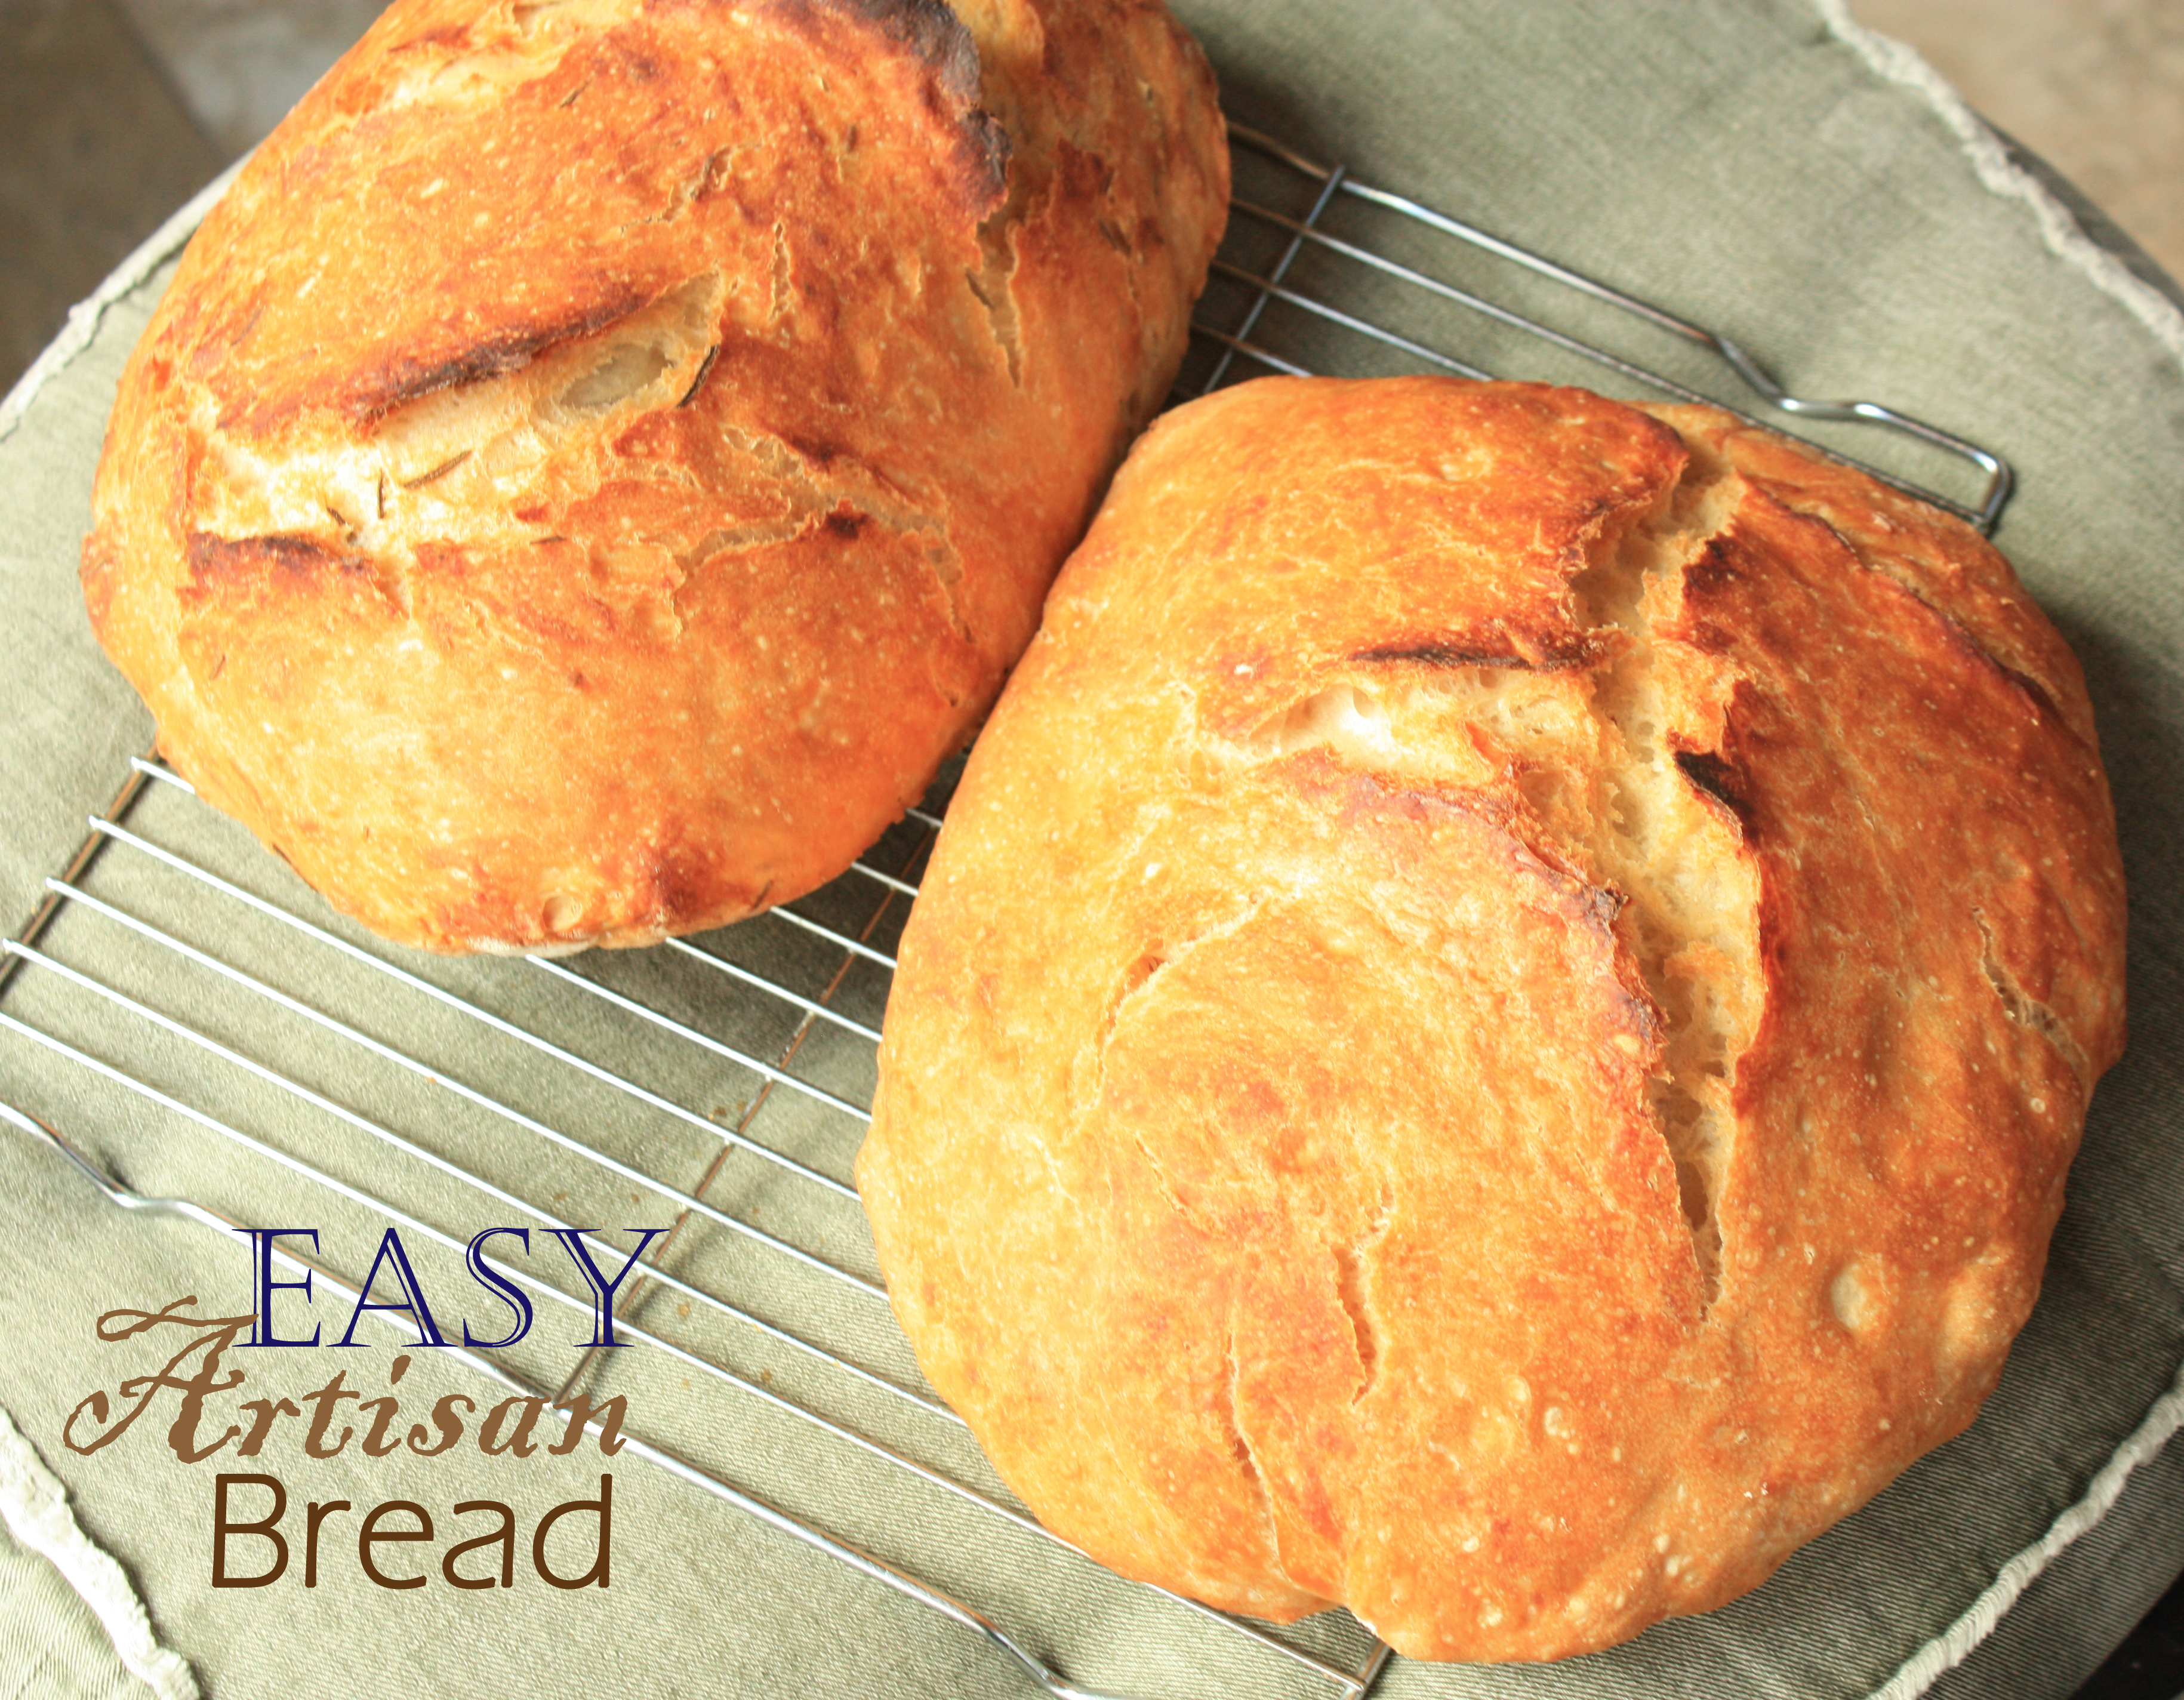 The super easy, no need to knead, Artisan Bread!